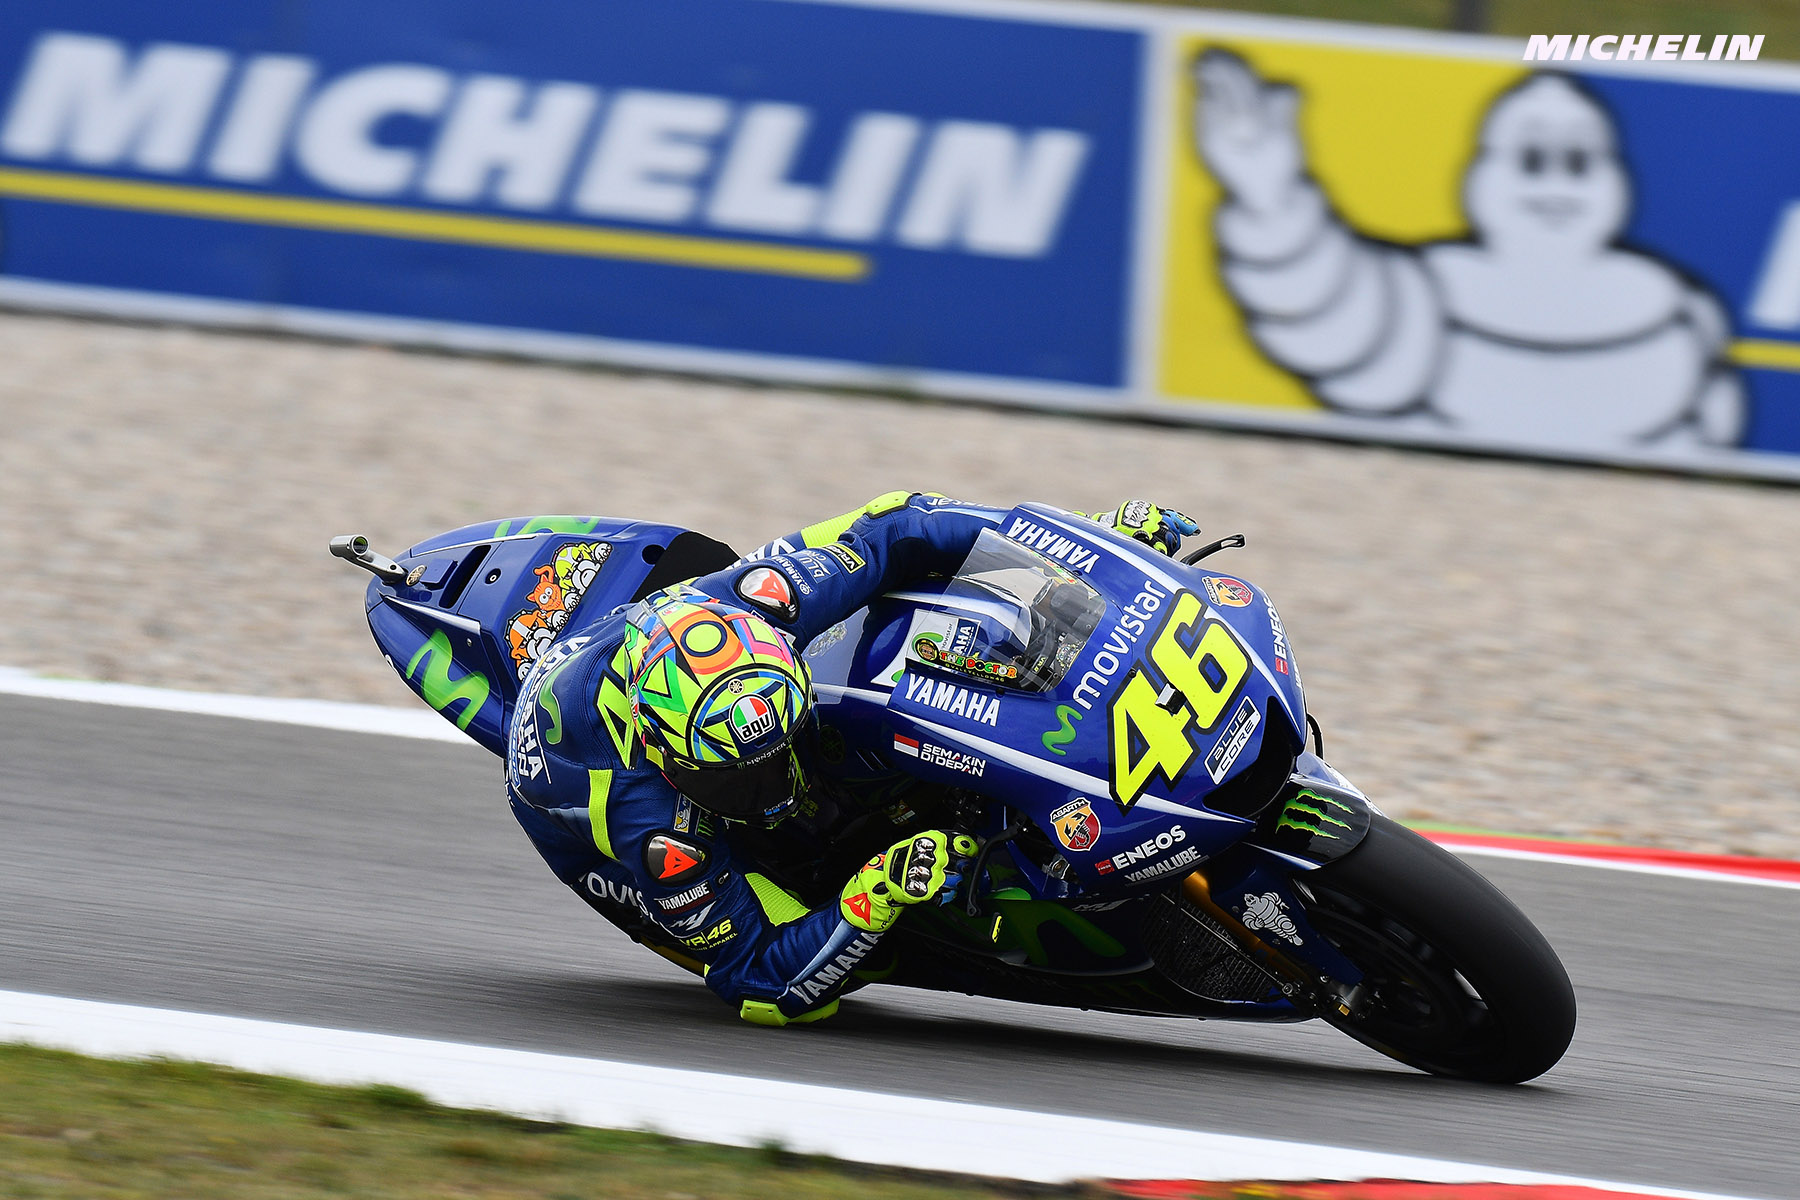 MotoGP: Rossi returns to winning ways at Assen